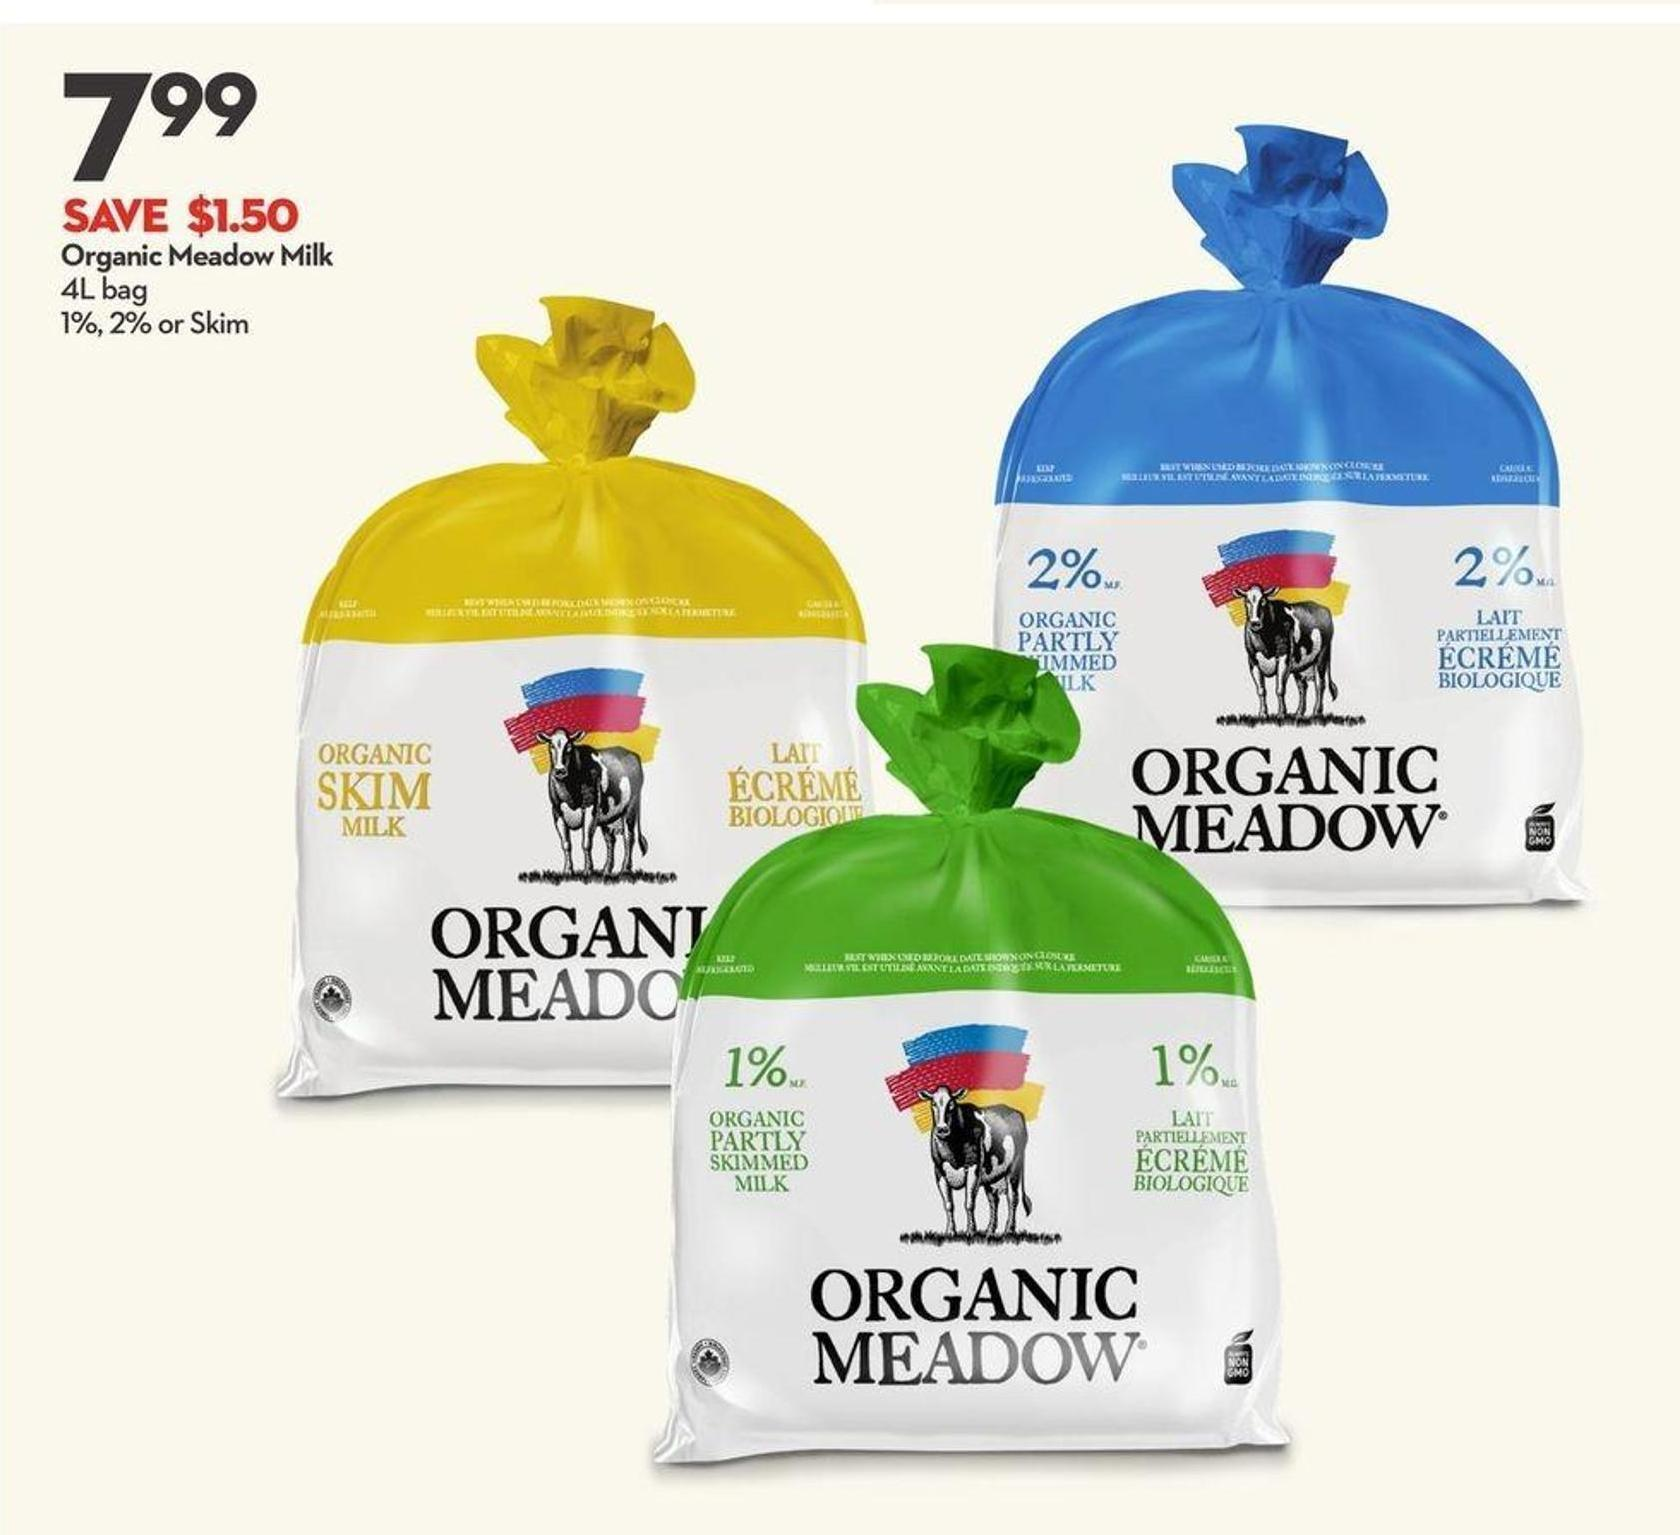 Organic Meadow Milk